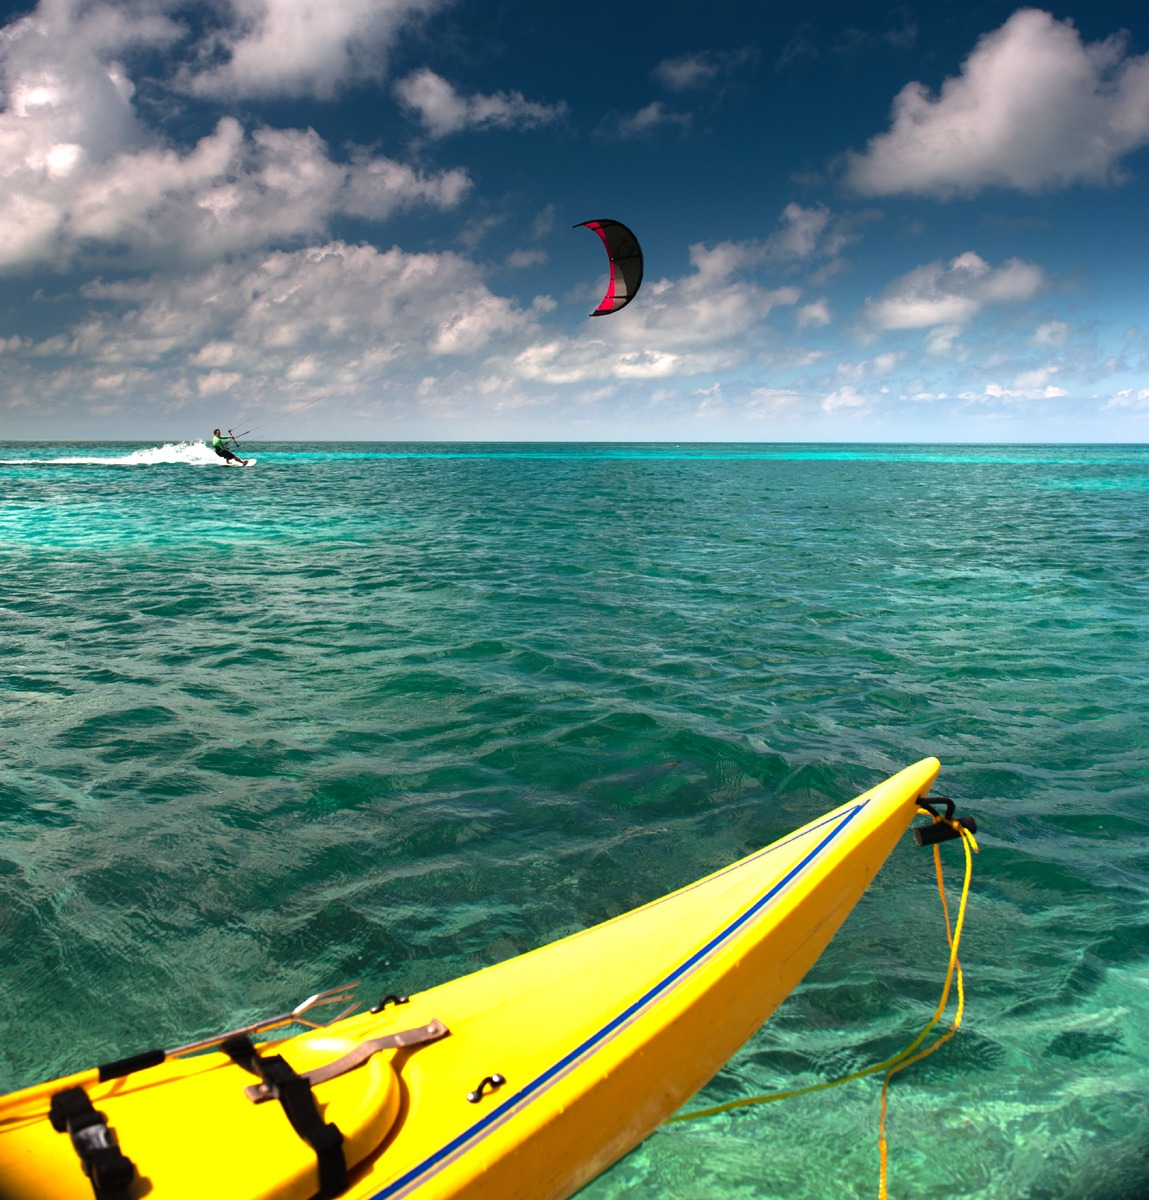 Sea kayaking and kiteboarding at the same location!